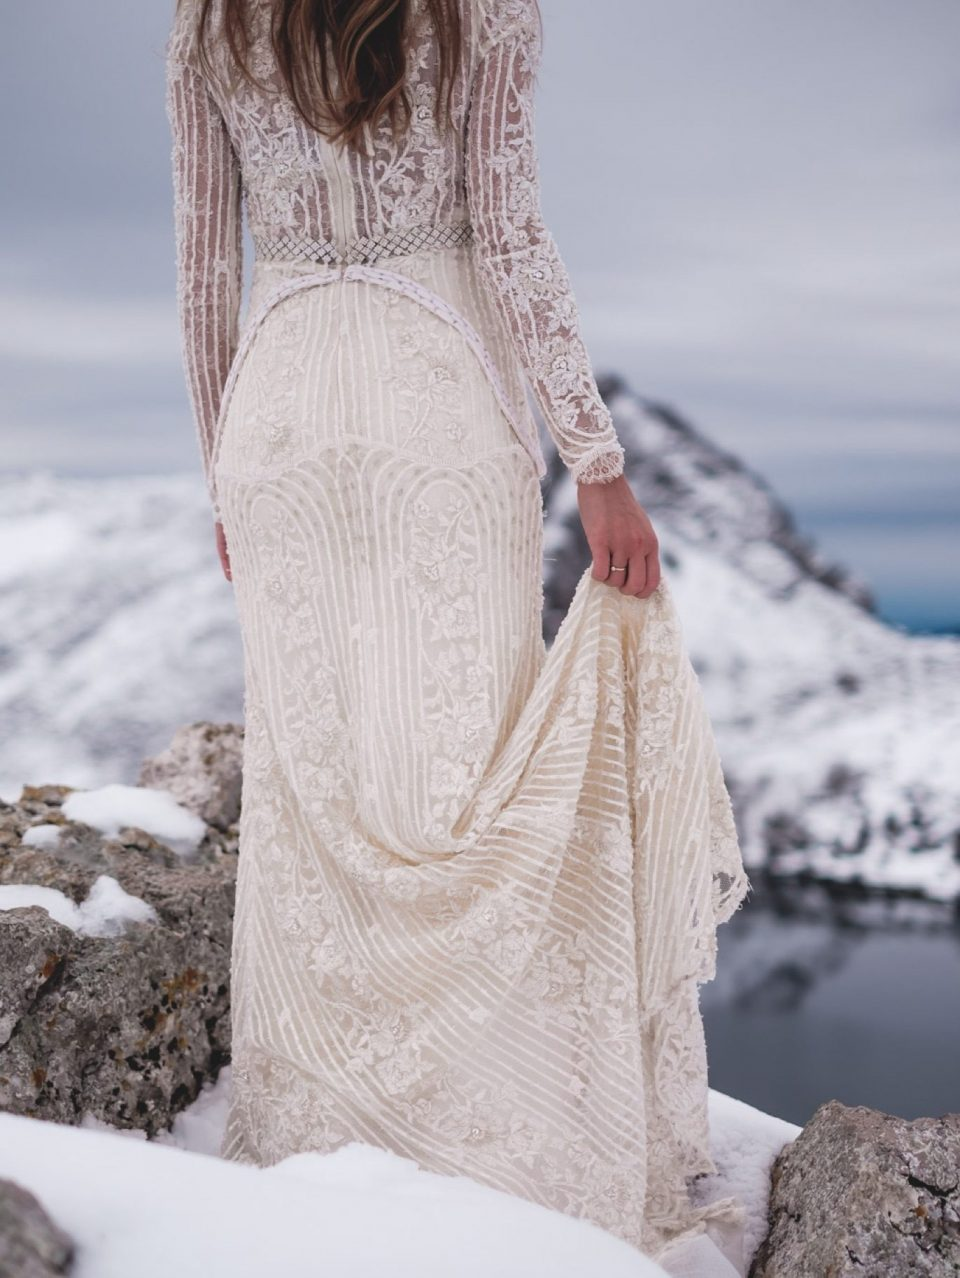 dress for a bride in winter